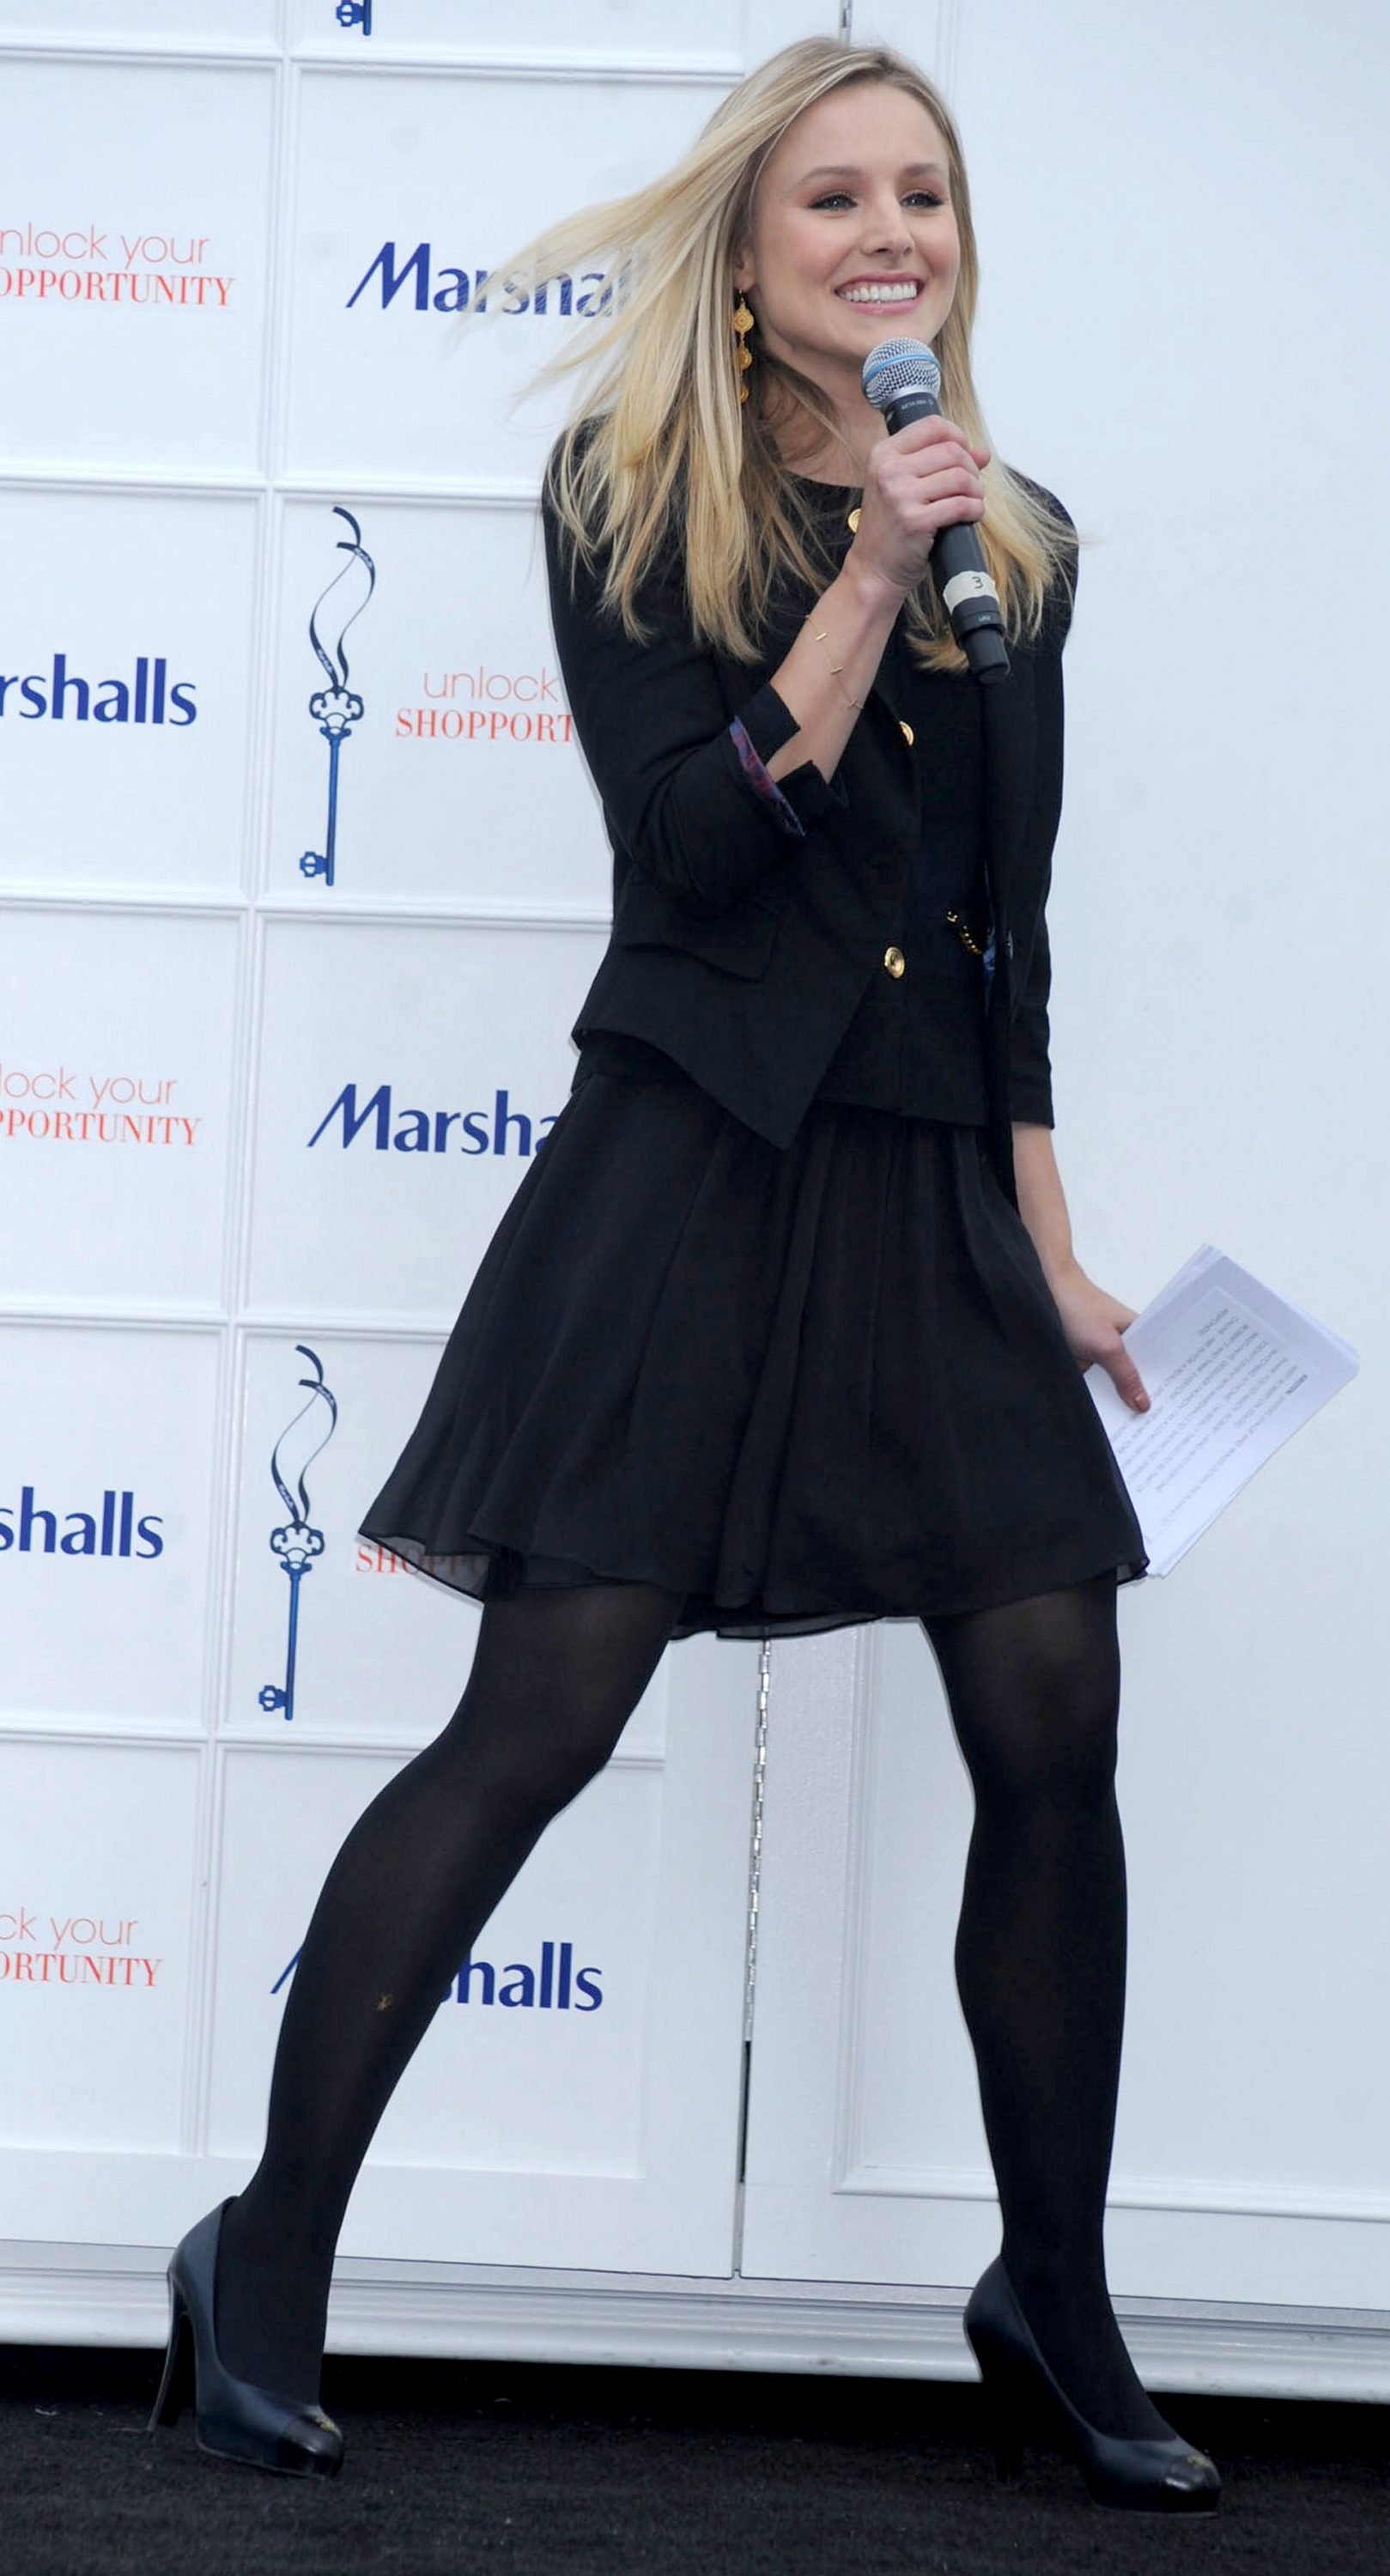 kristen bell at marshalls dress for success fashion show 2010 16 kristen bell at marshalls dress for success fashion show 2010 16 full size